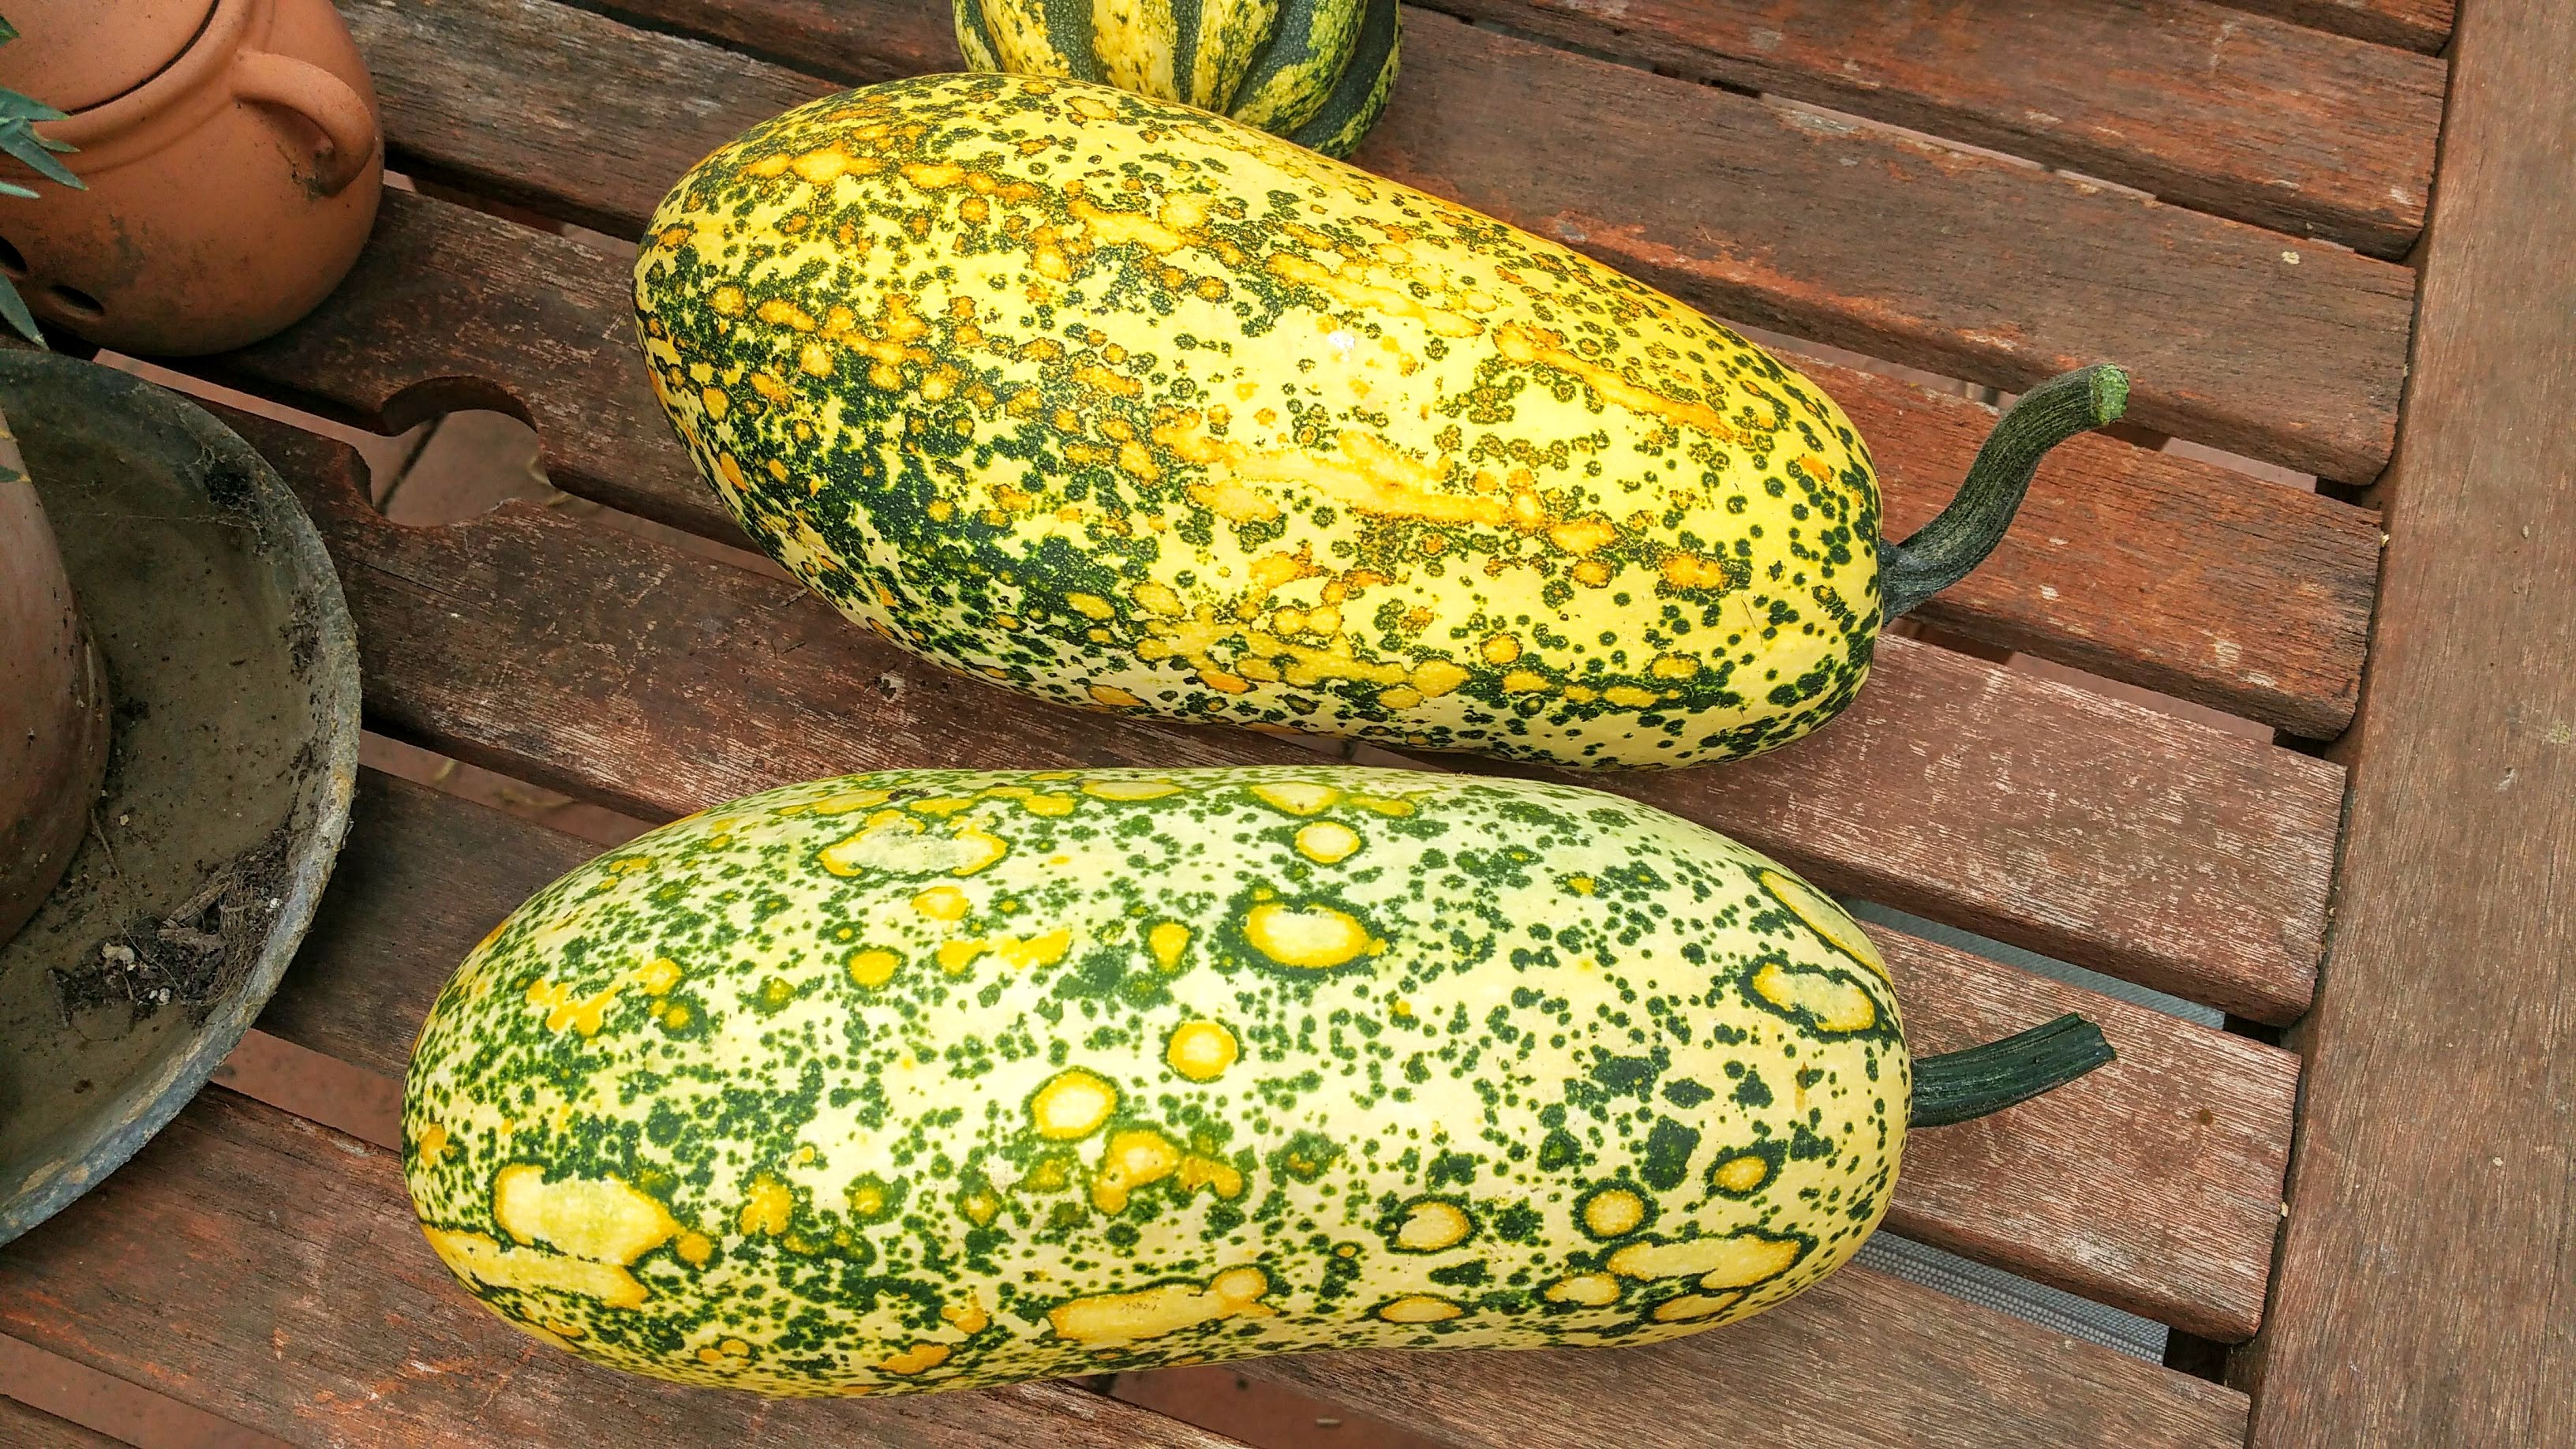 photo of speckled winter squash